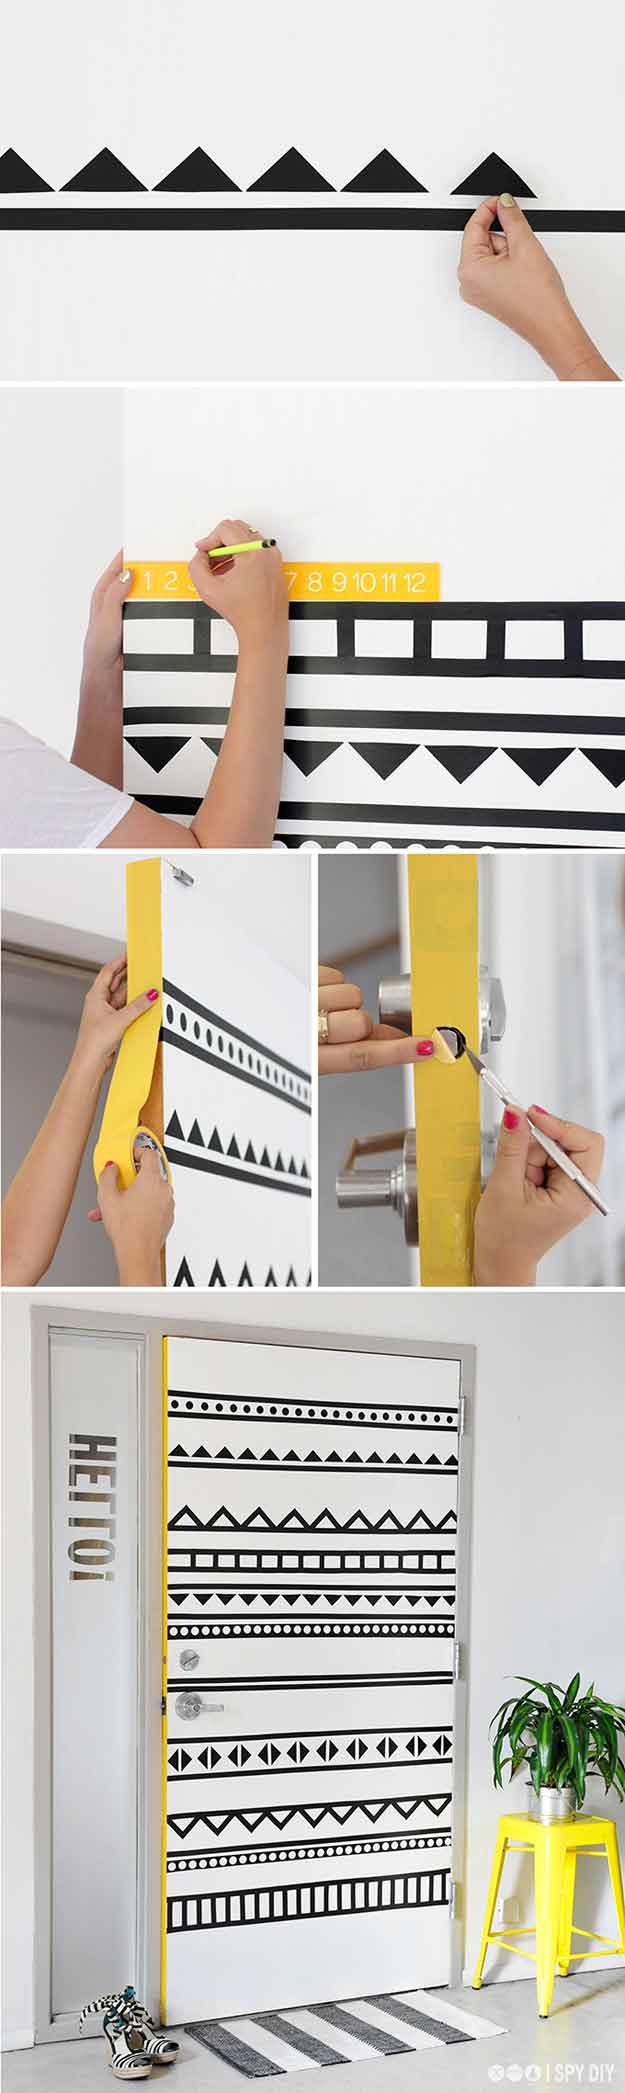 Cute Teen Bedroom Ideas for DIY Decor | DIY Door Art With Washi Tape | Cheap DIY Room Decor for Teens